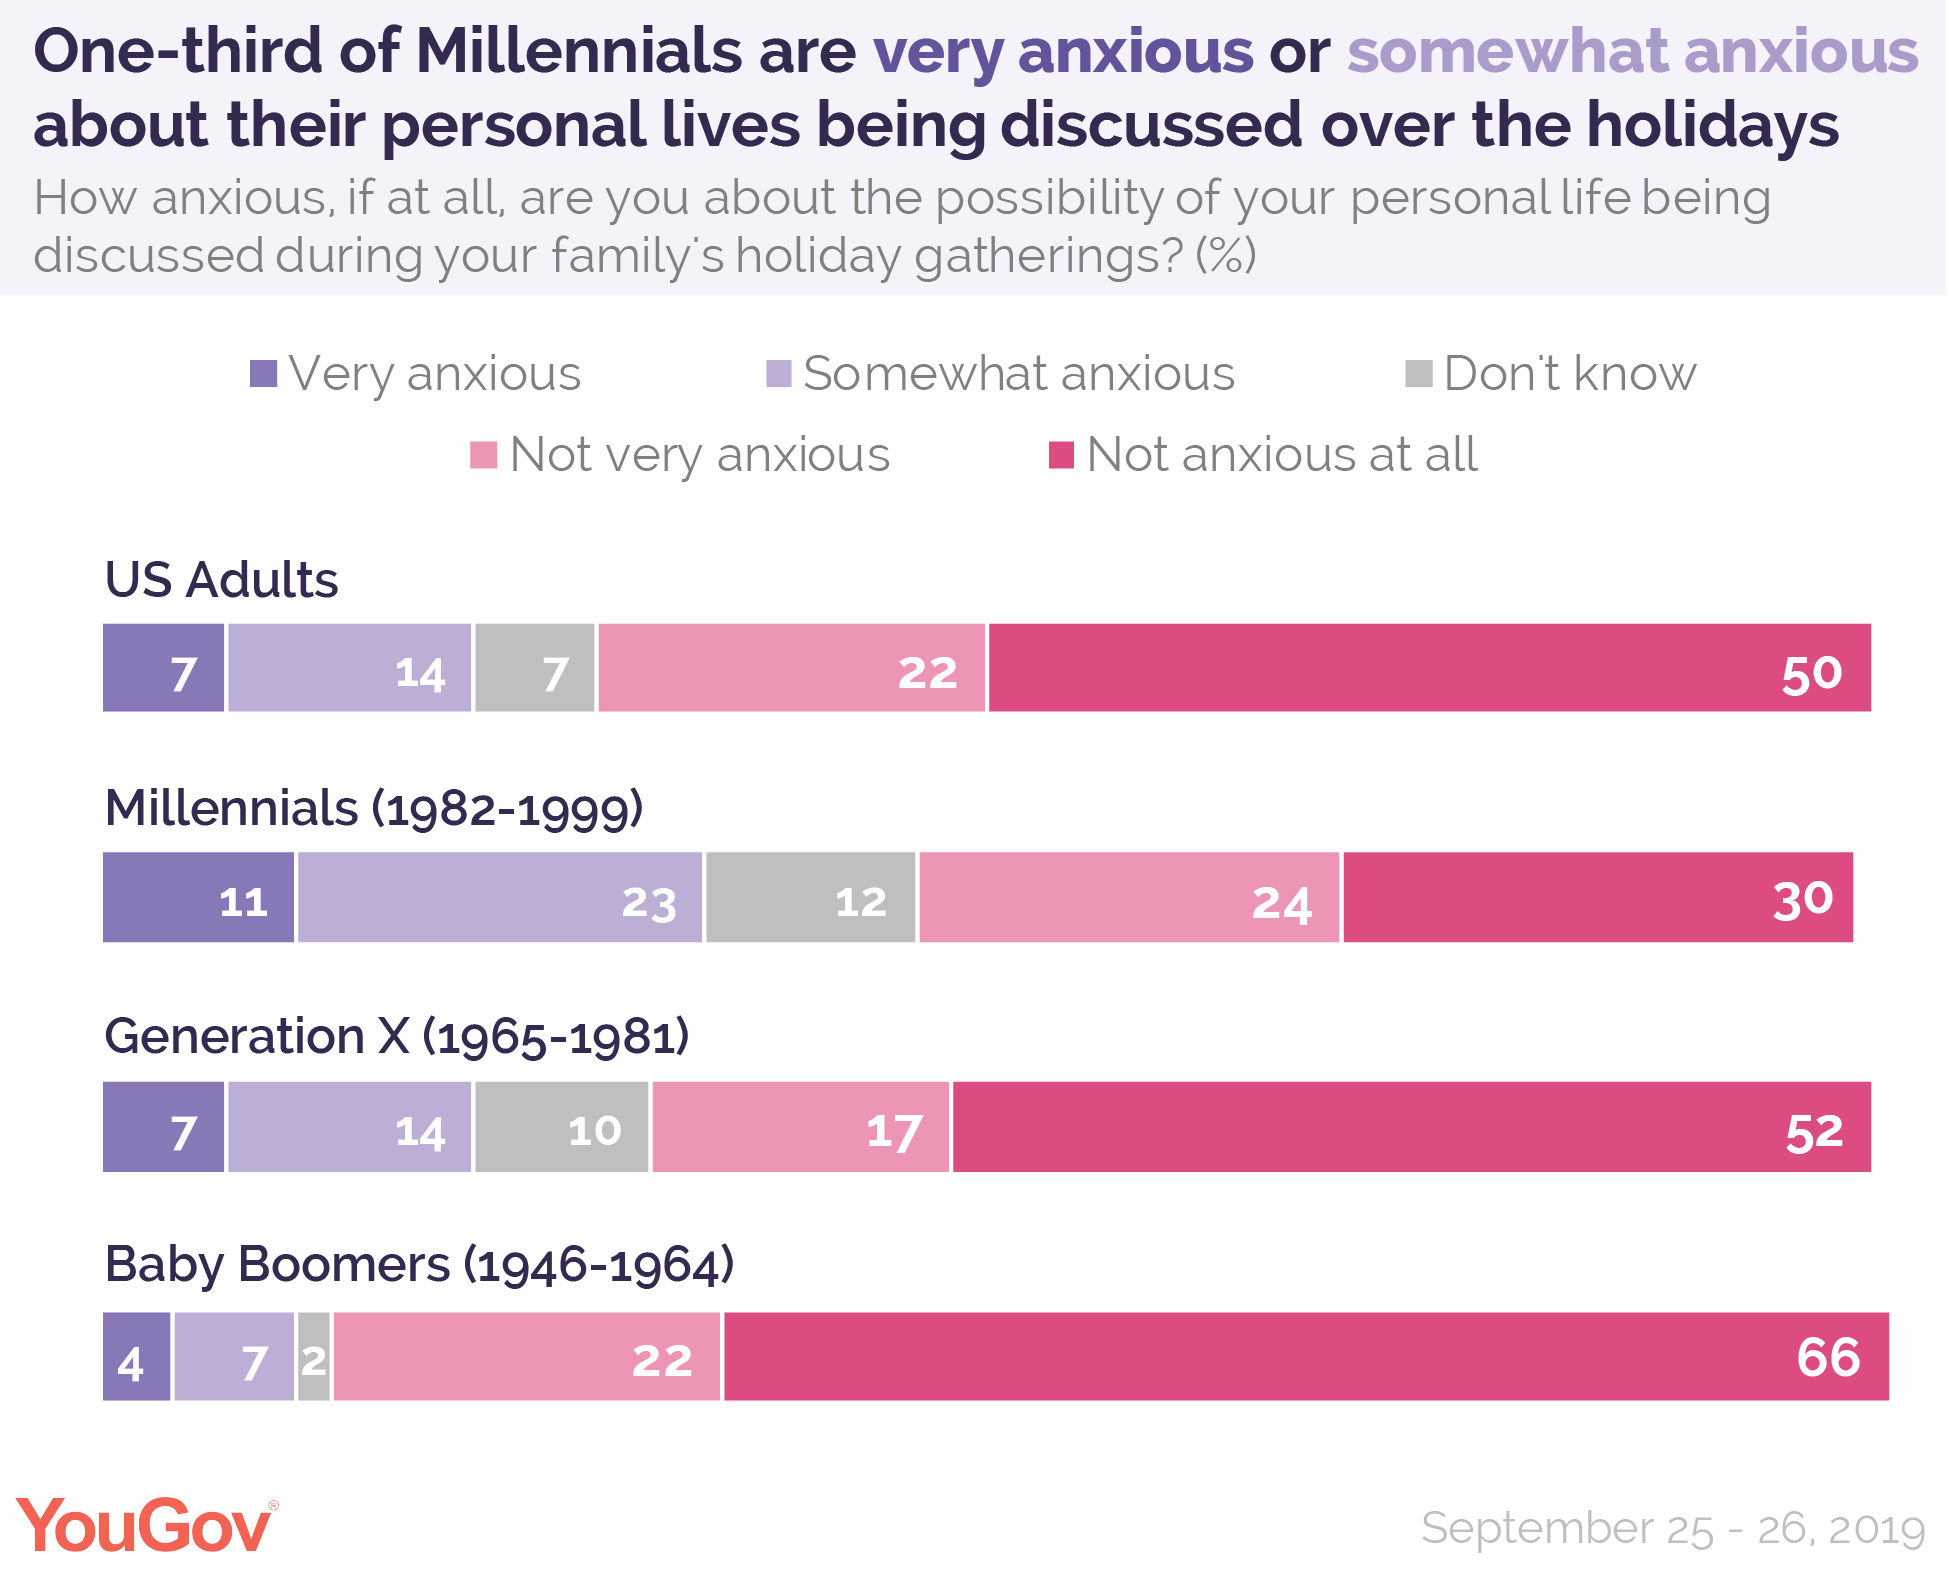 One-third of Millennials are very anxious or somewhat anxious about their personal lives being discussed over the holidays